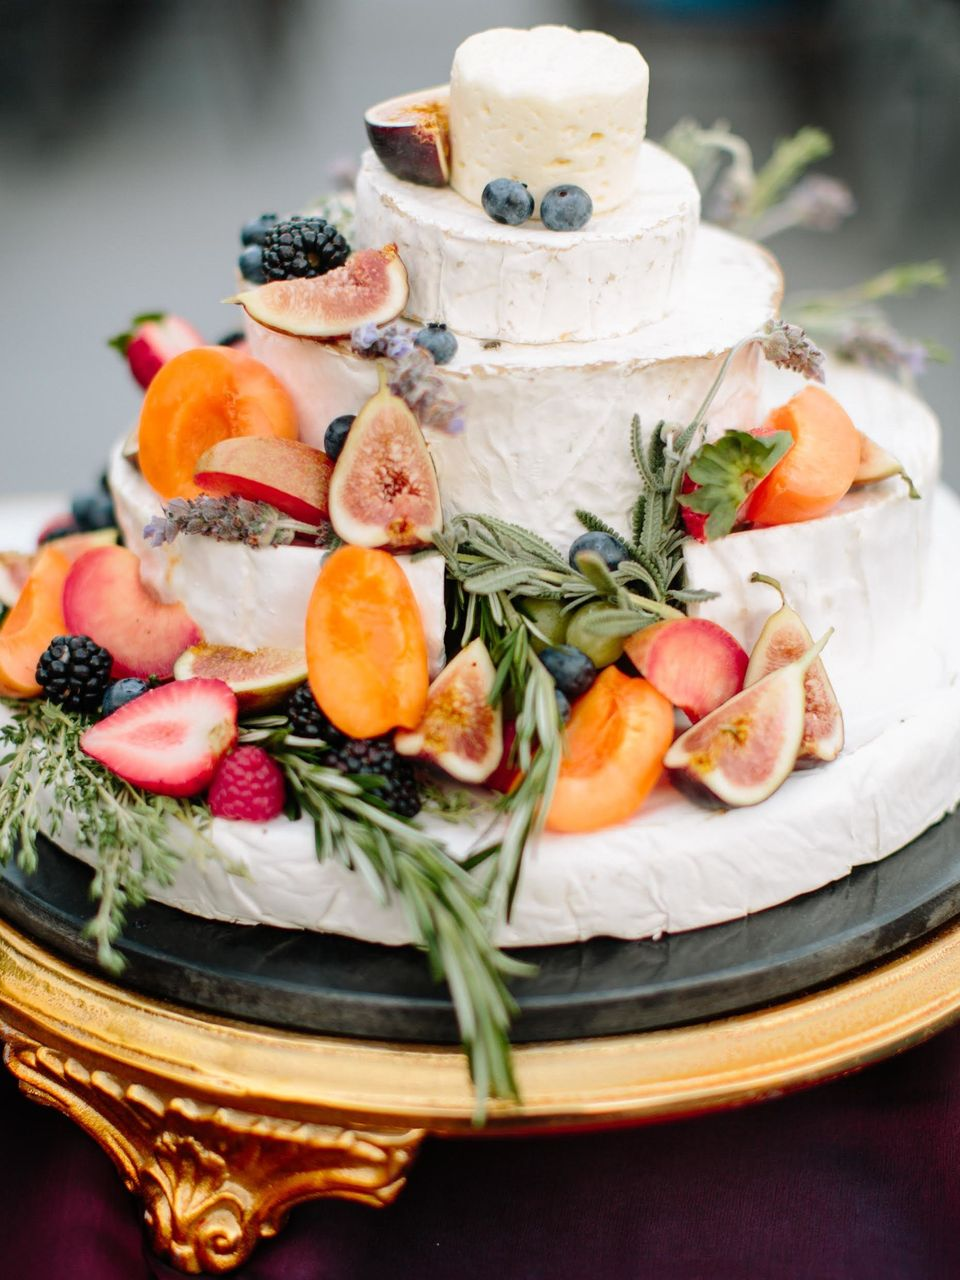 Wedding Cake Alternatives.13 Wedding Cake Alternatives For Couples Who Prefer Savory Over